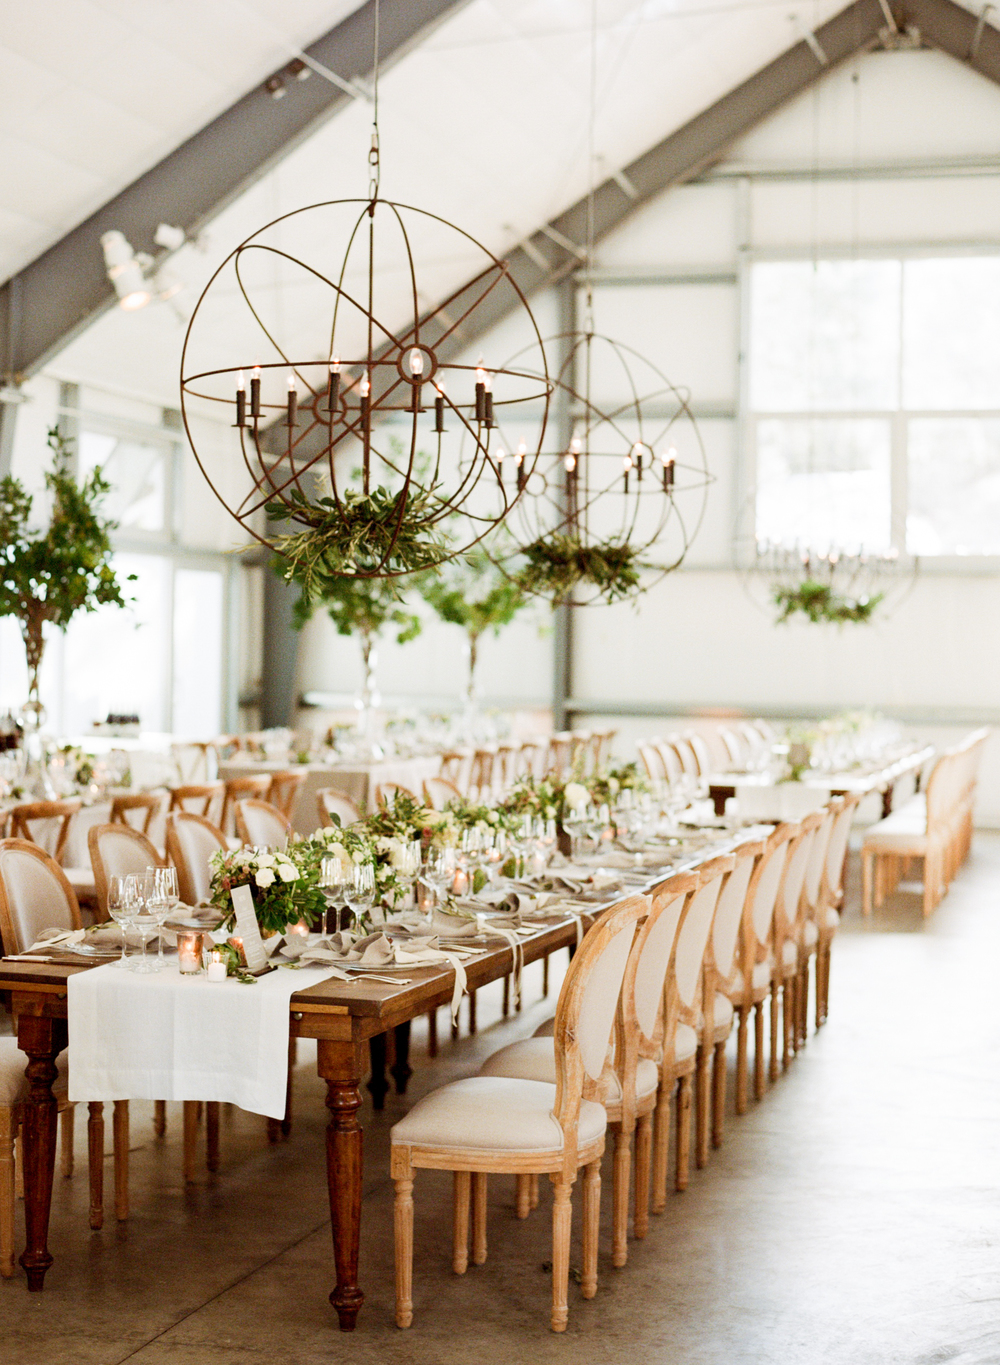 Cast iron sphere chandeliers hang in airy barn reception;  Sylvie Gil Photography